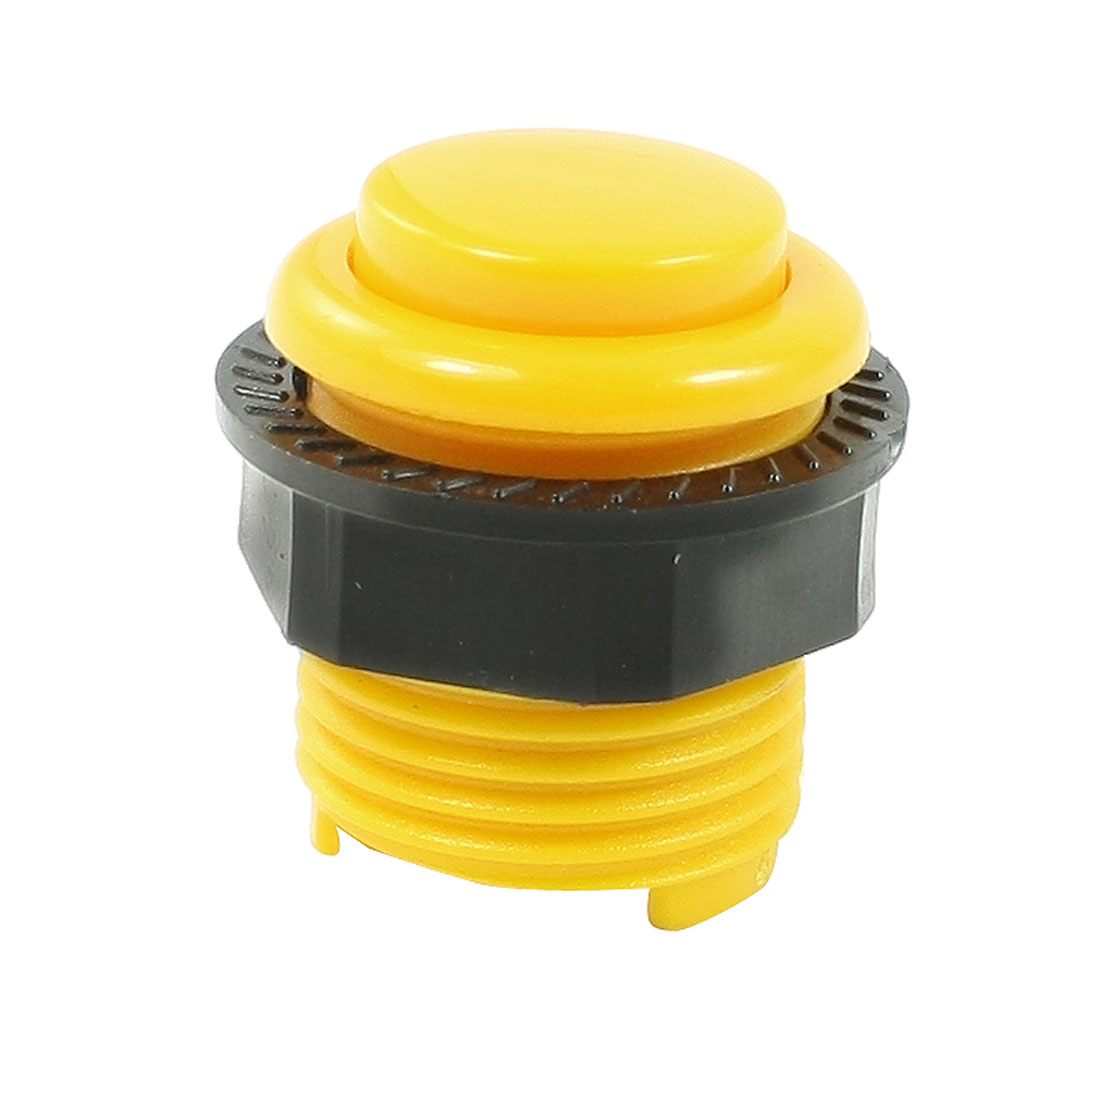 AC 250V 1.5A Normally Open 2 Soldering Points 24mm Dia Thread Push Button Switch Yellow